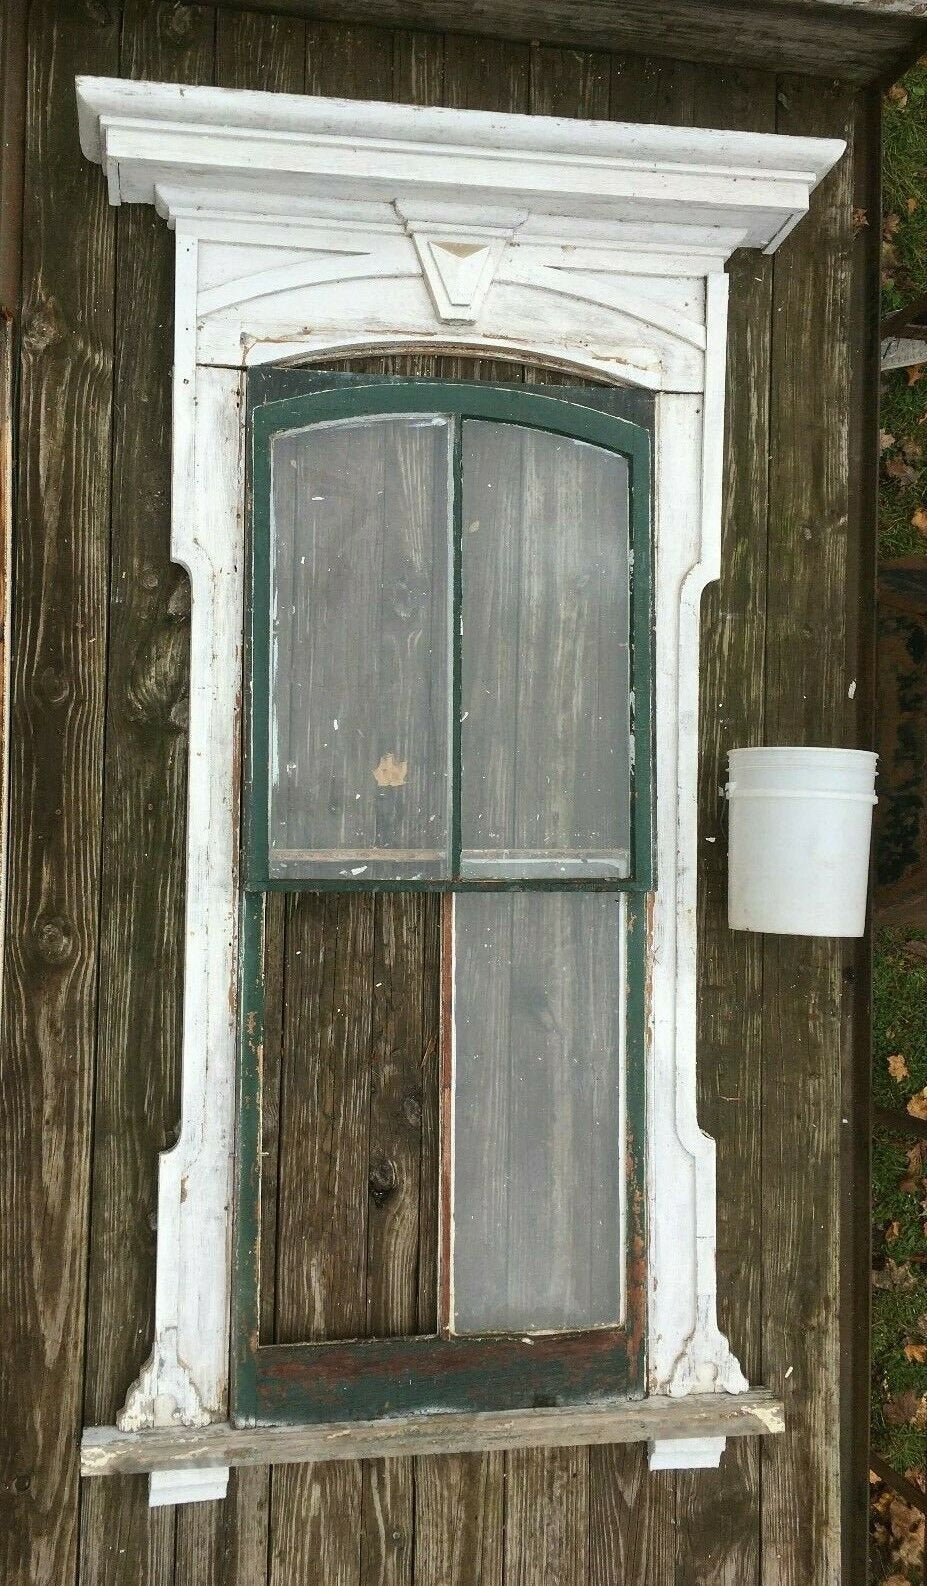 Antique Arch Window Surround Pediment Shabby Vtg Chic Gingerbread Old 337-19E Pick Up Only Or Buyer Arrange Shipping